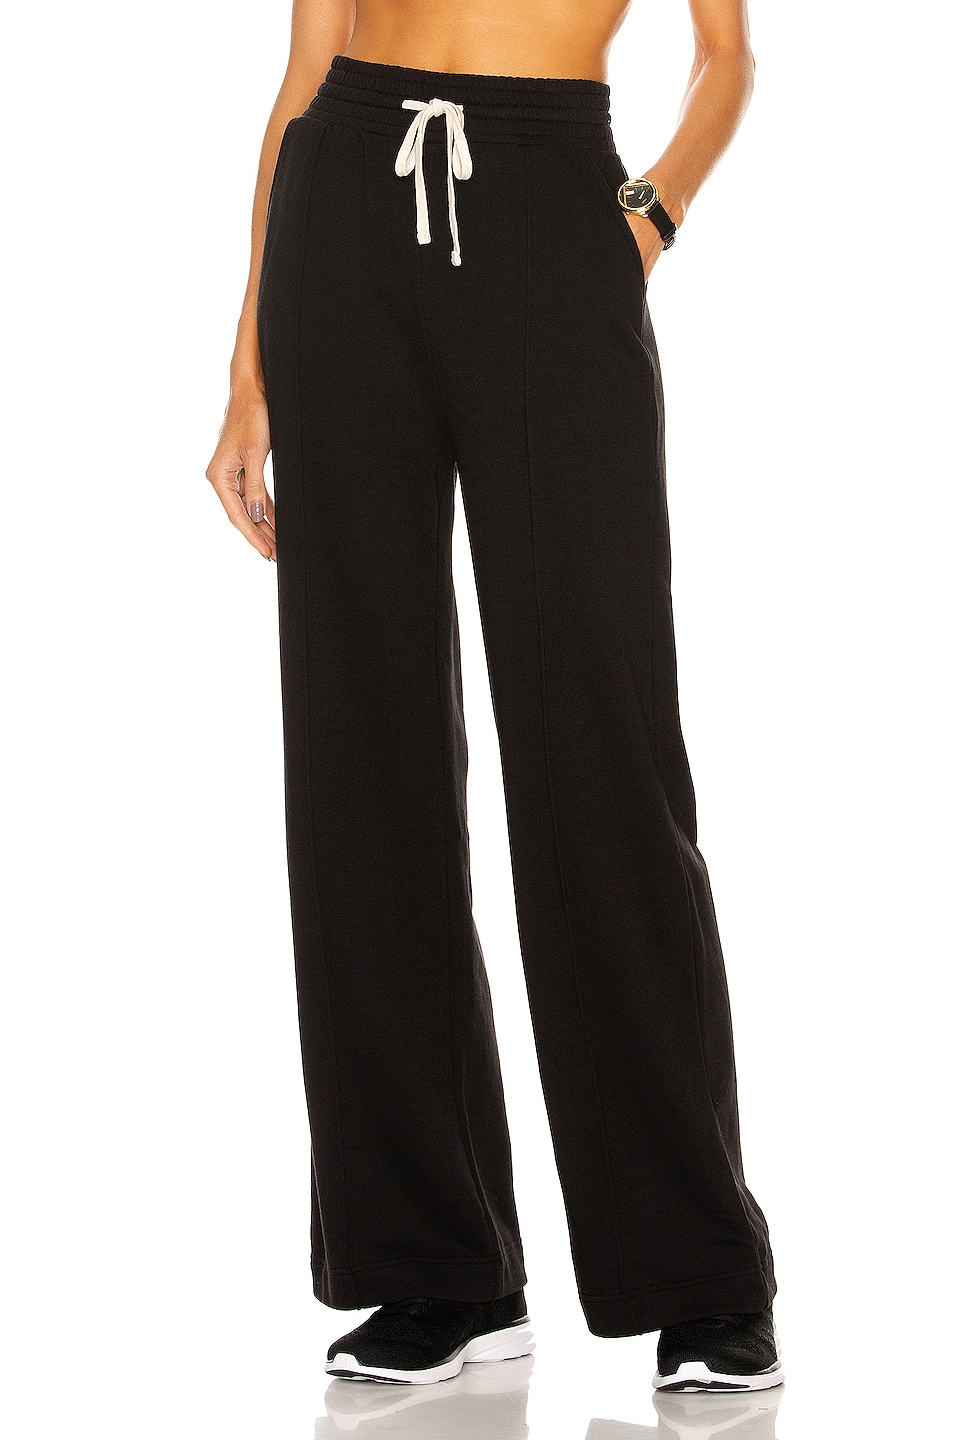 Image 1 of Nylora Beo Pants in Black